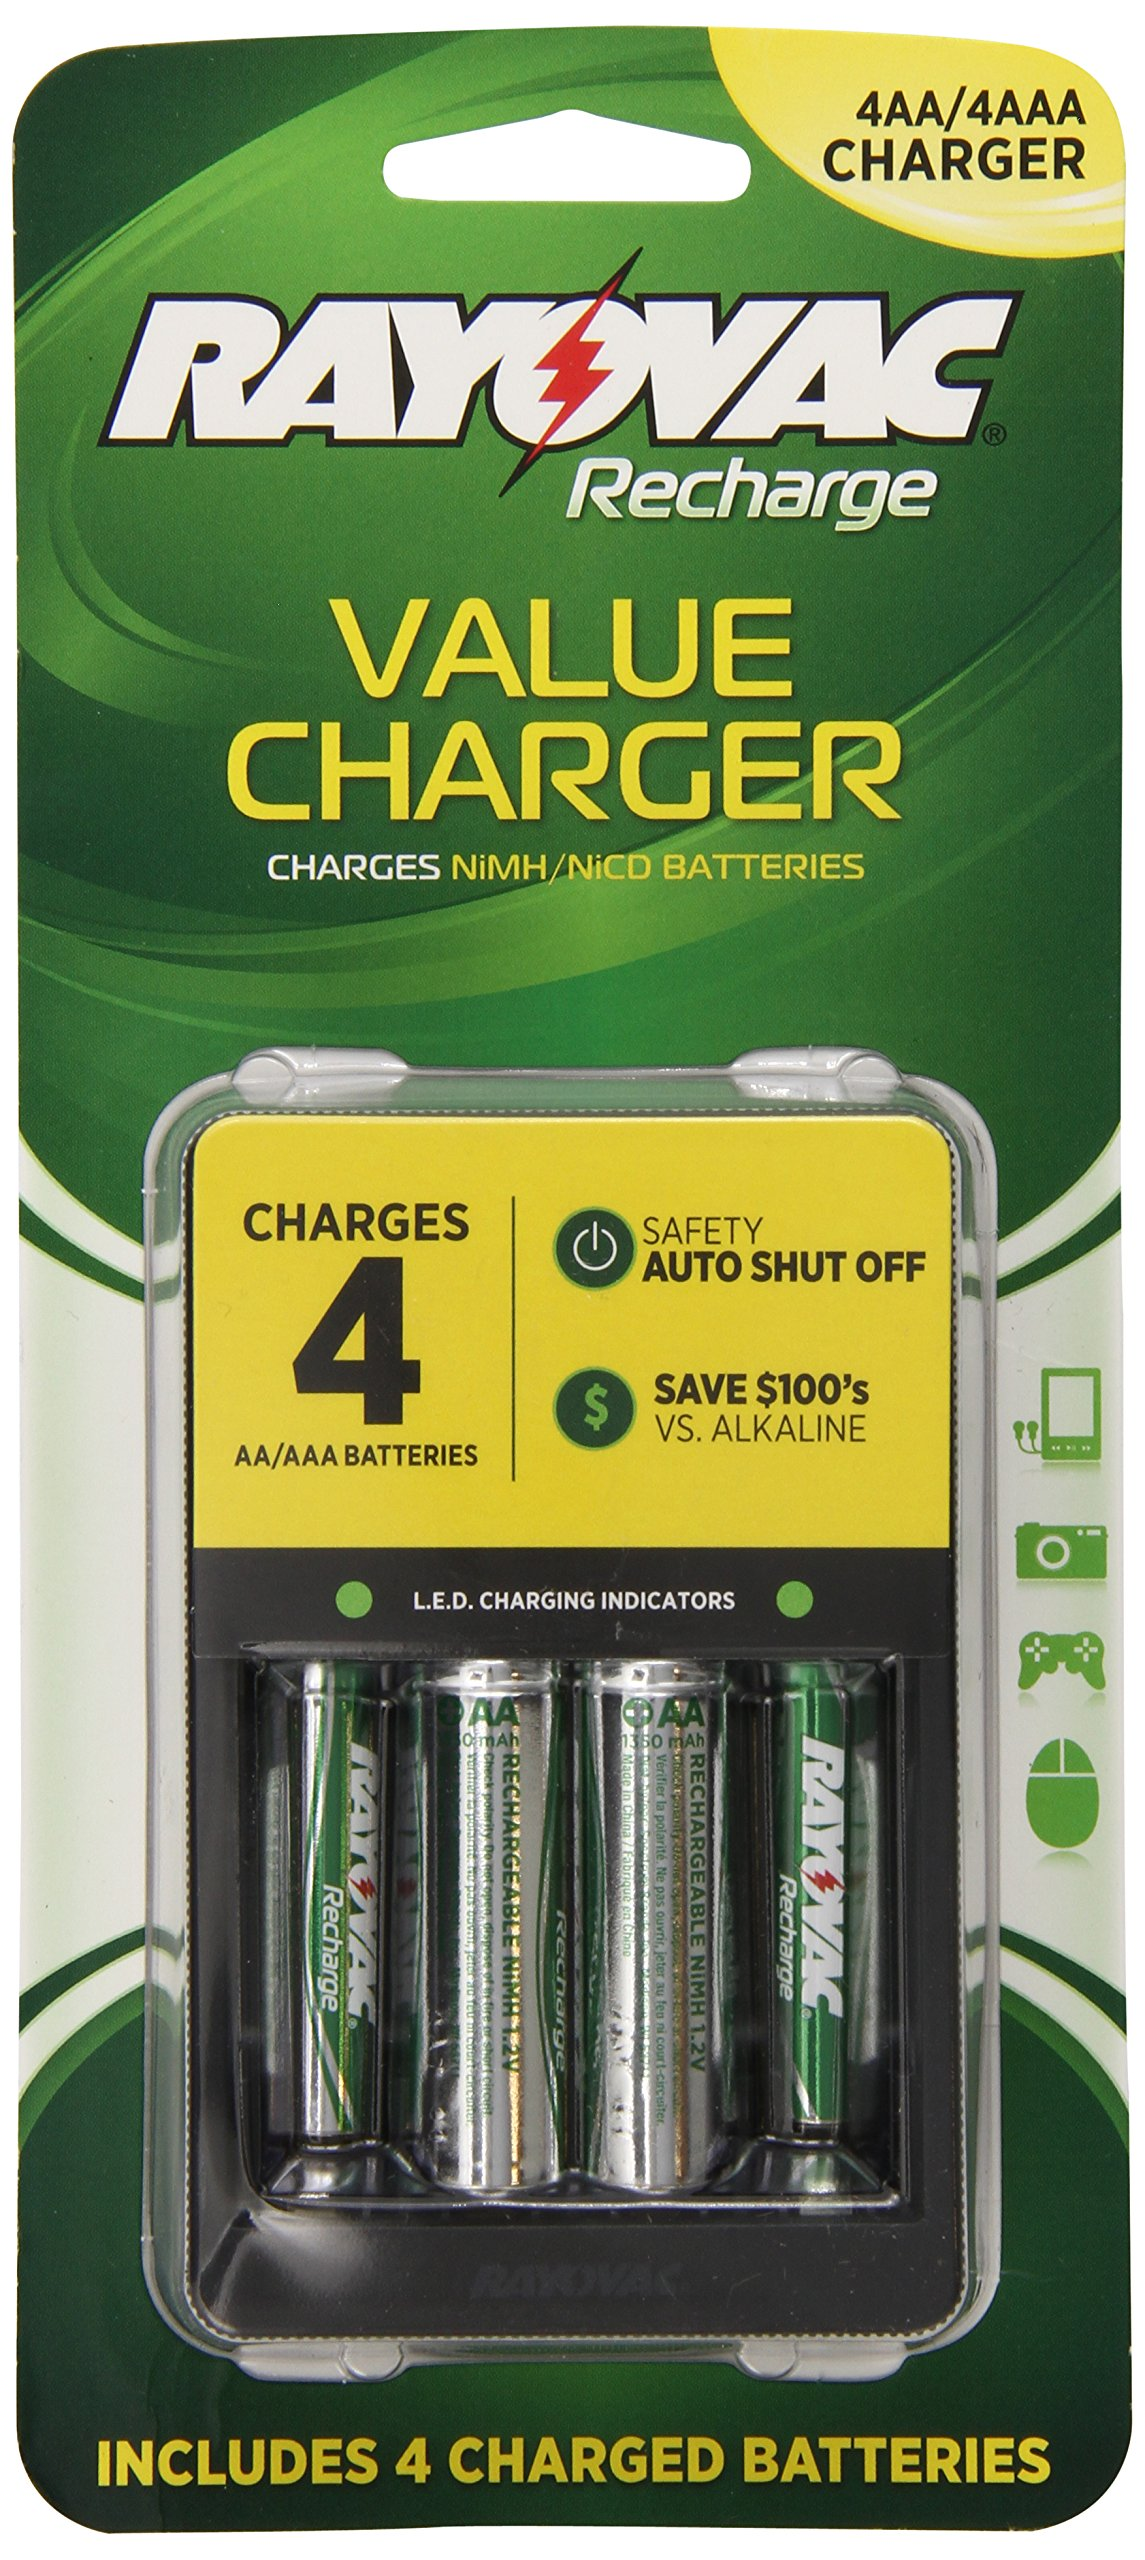 Rayovac 4 Position AA/AAA Value Charger, PS133-4B